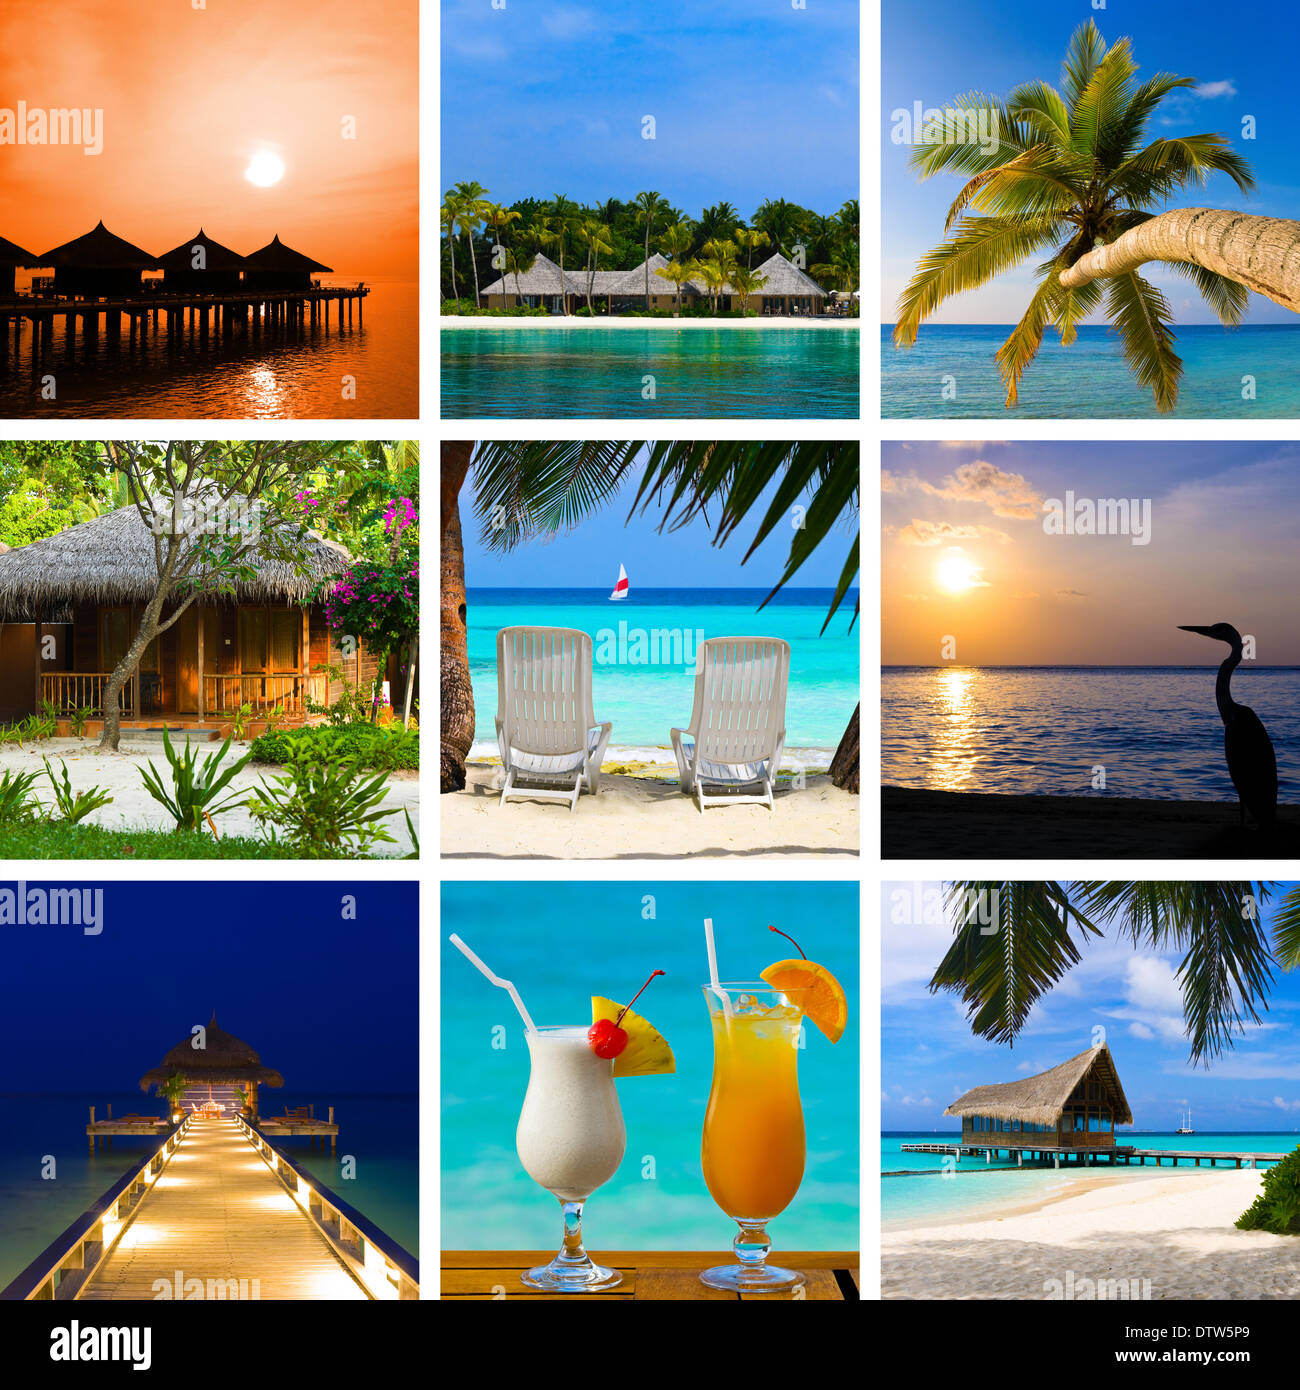 Collage of summer beach maldives images - Stock Image